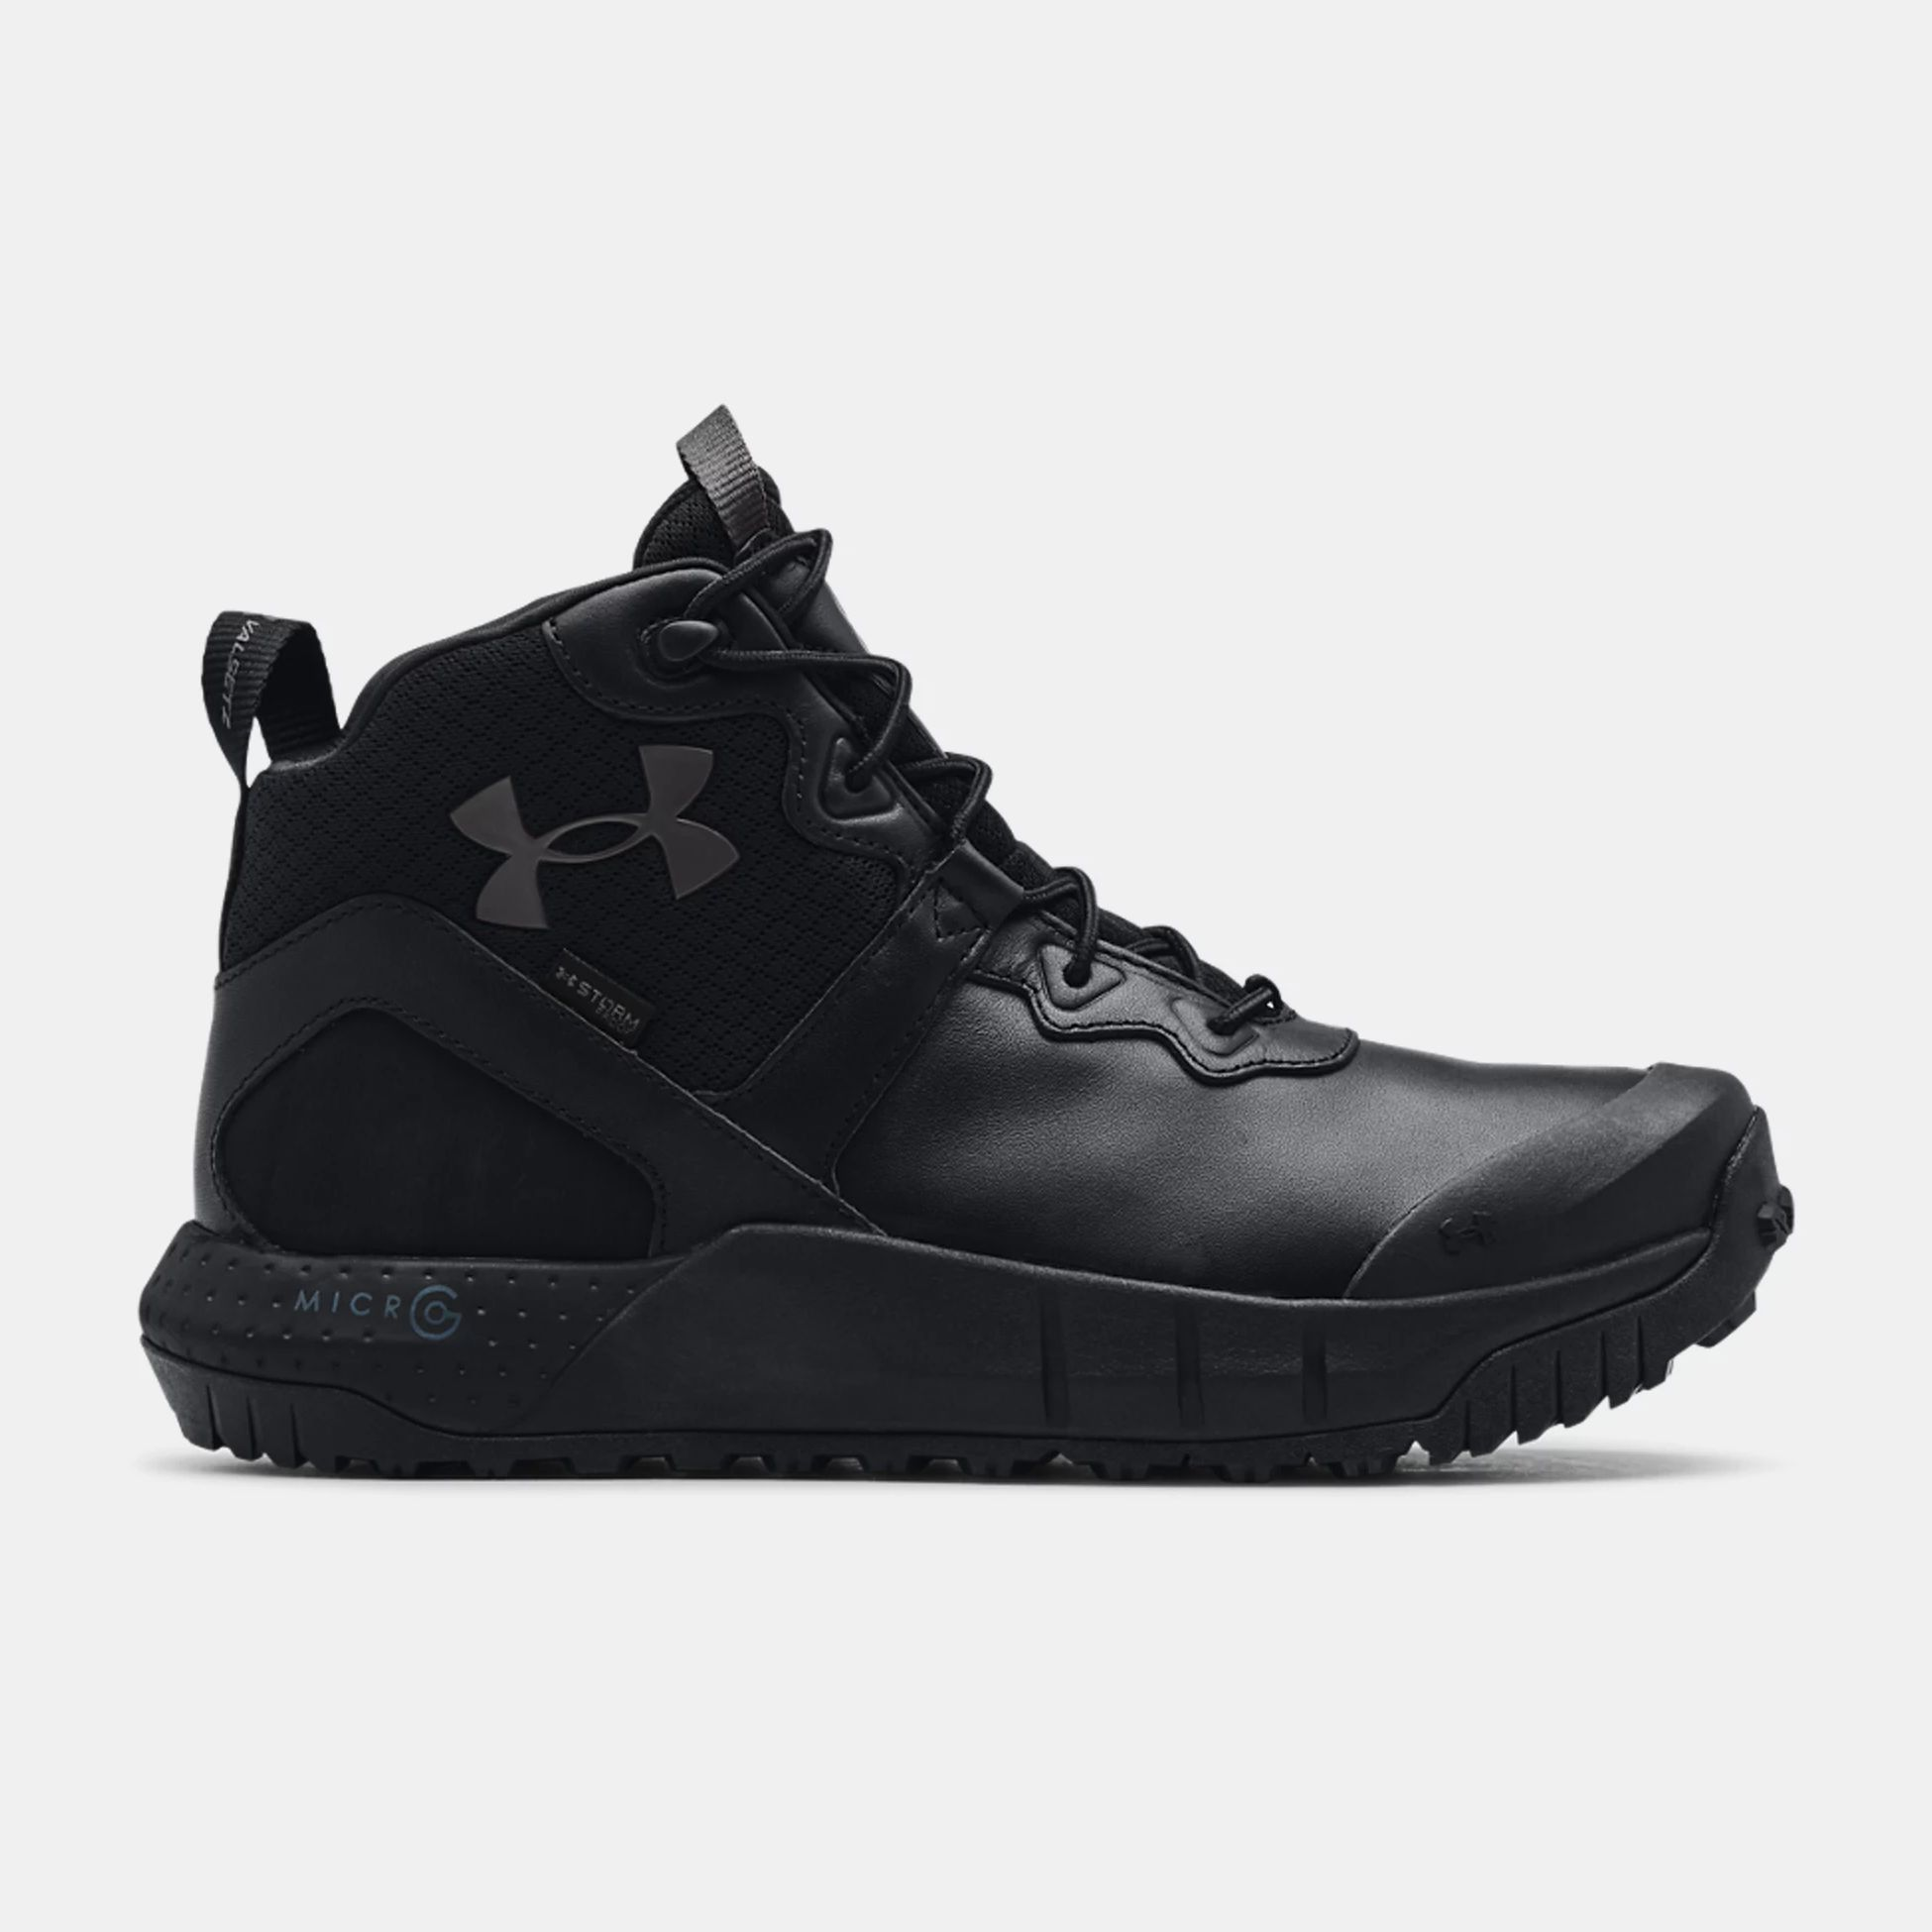 Shoes -  under armour UA Micro G Valsetz Mid Leather WP Tactical Boots